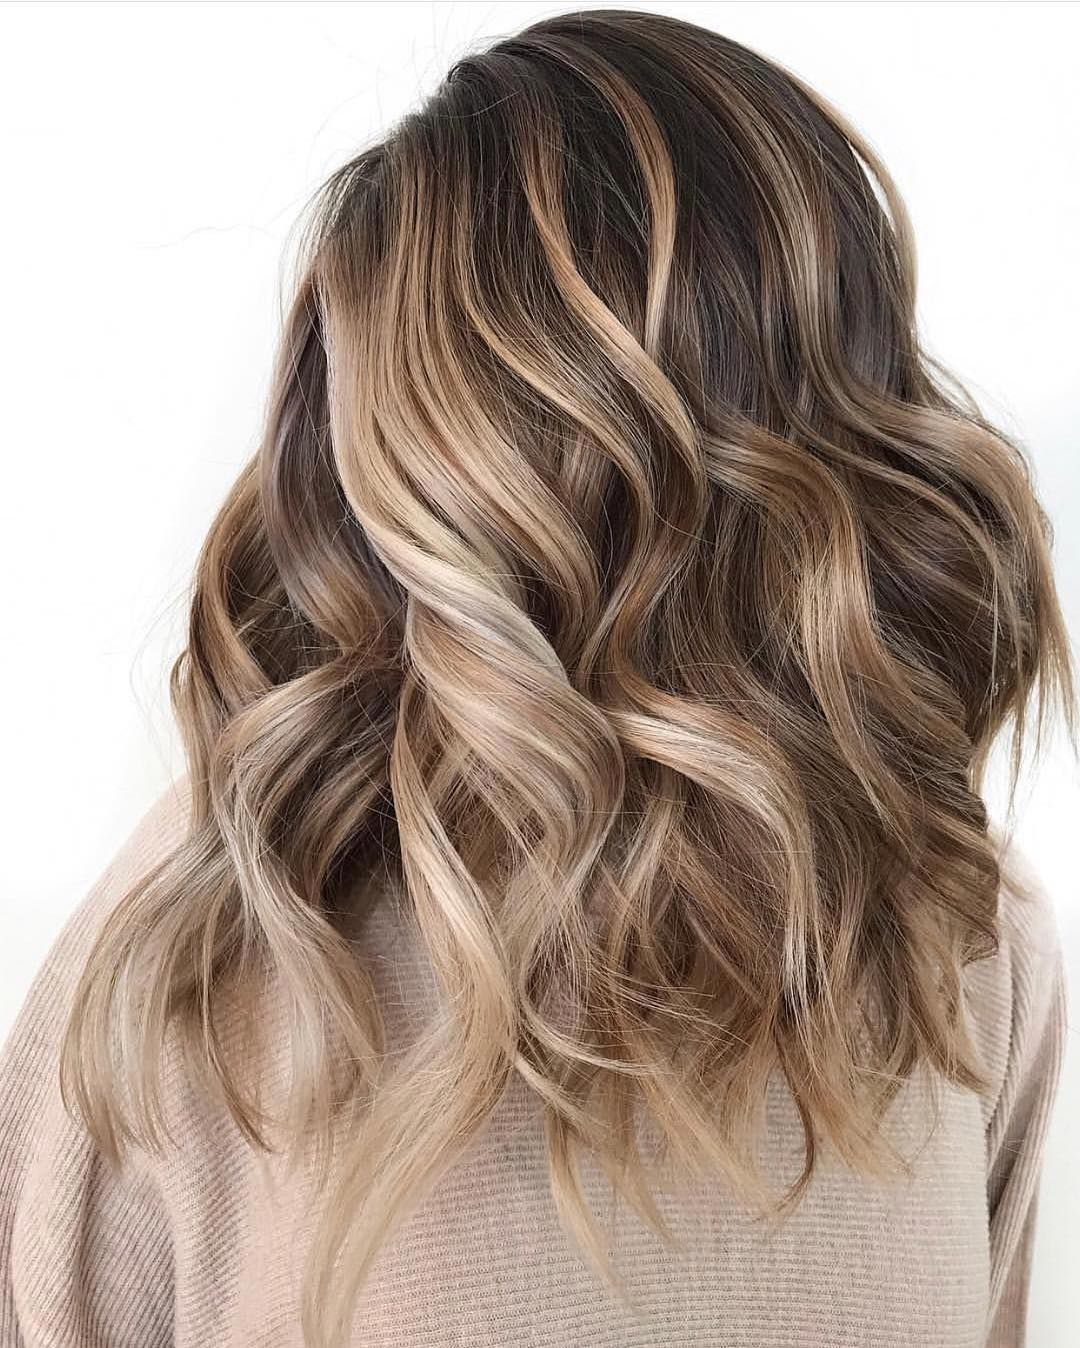 Cities Best Hair Artists On Instagram Wow Beautiful Color And Style By Stephanie Stylist Balayage Hair Hair Styles Hair Color Balayage